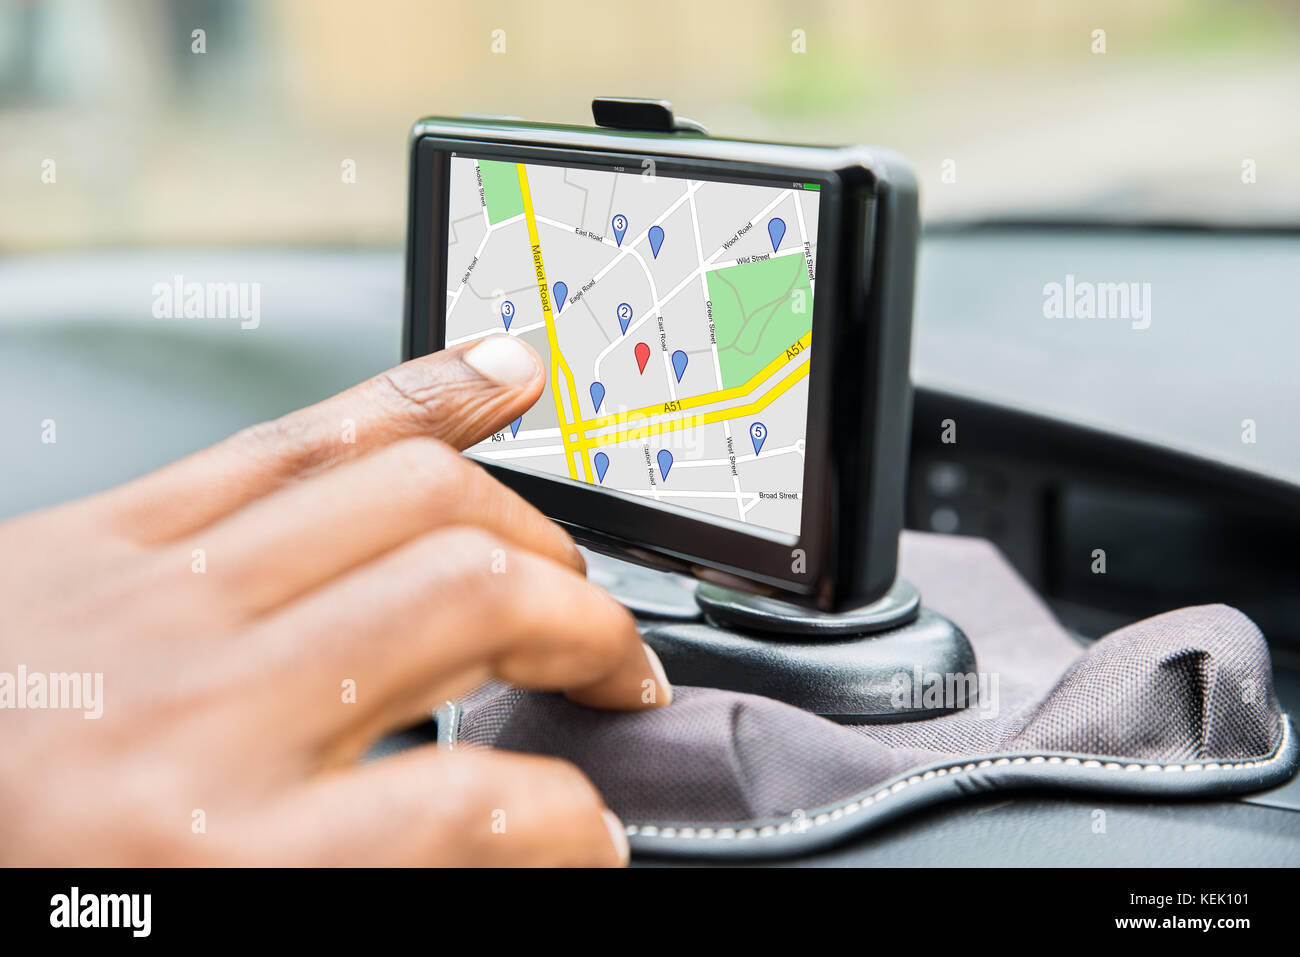 Close-up Of Person's Hand Using GPS Service While Driving Car - Stock Image